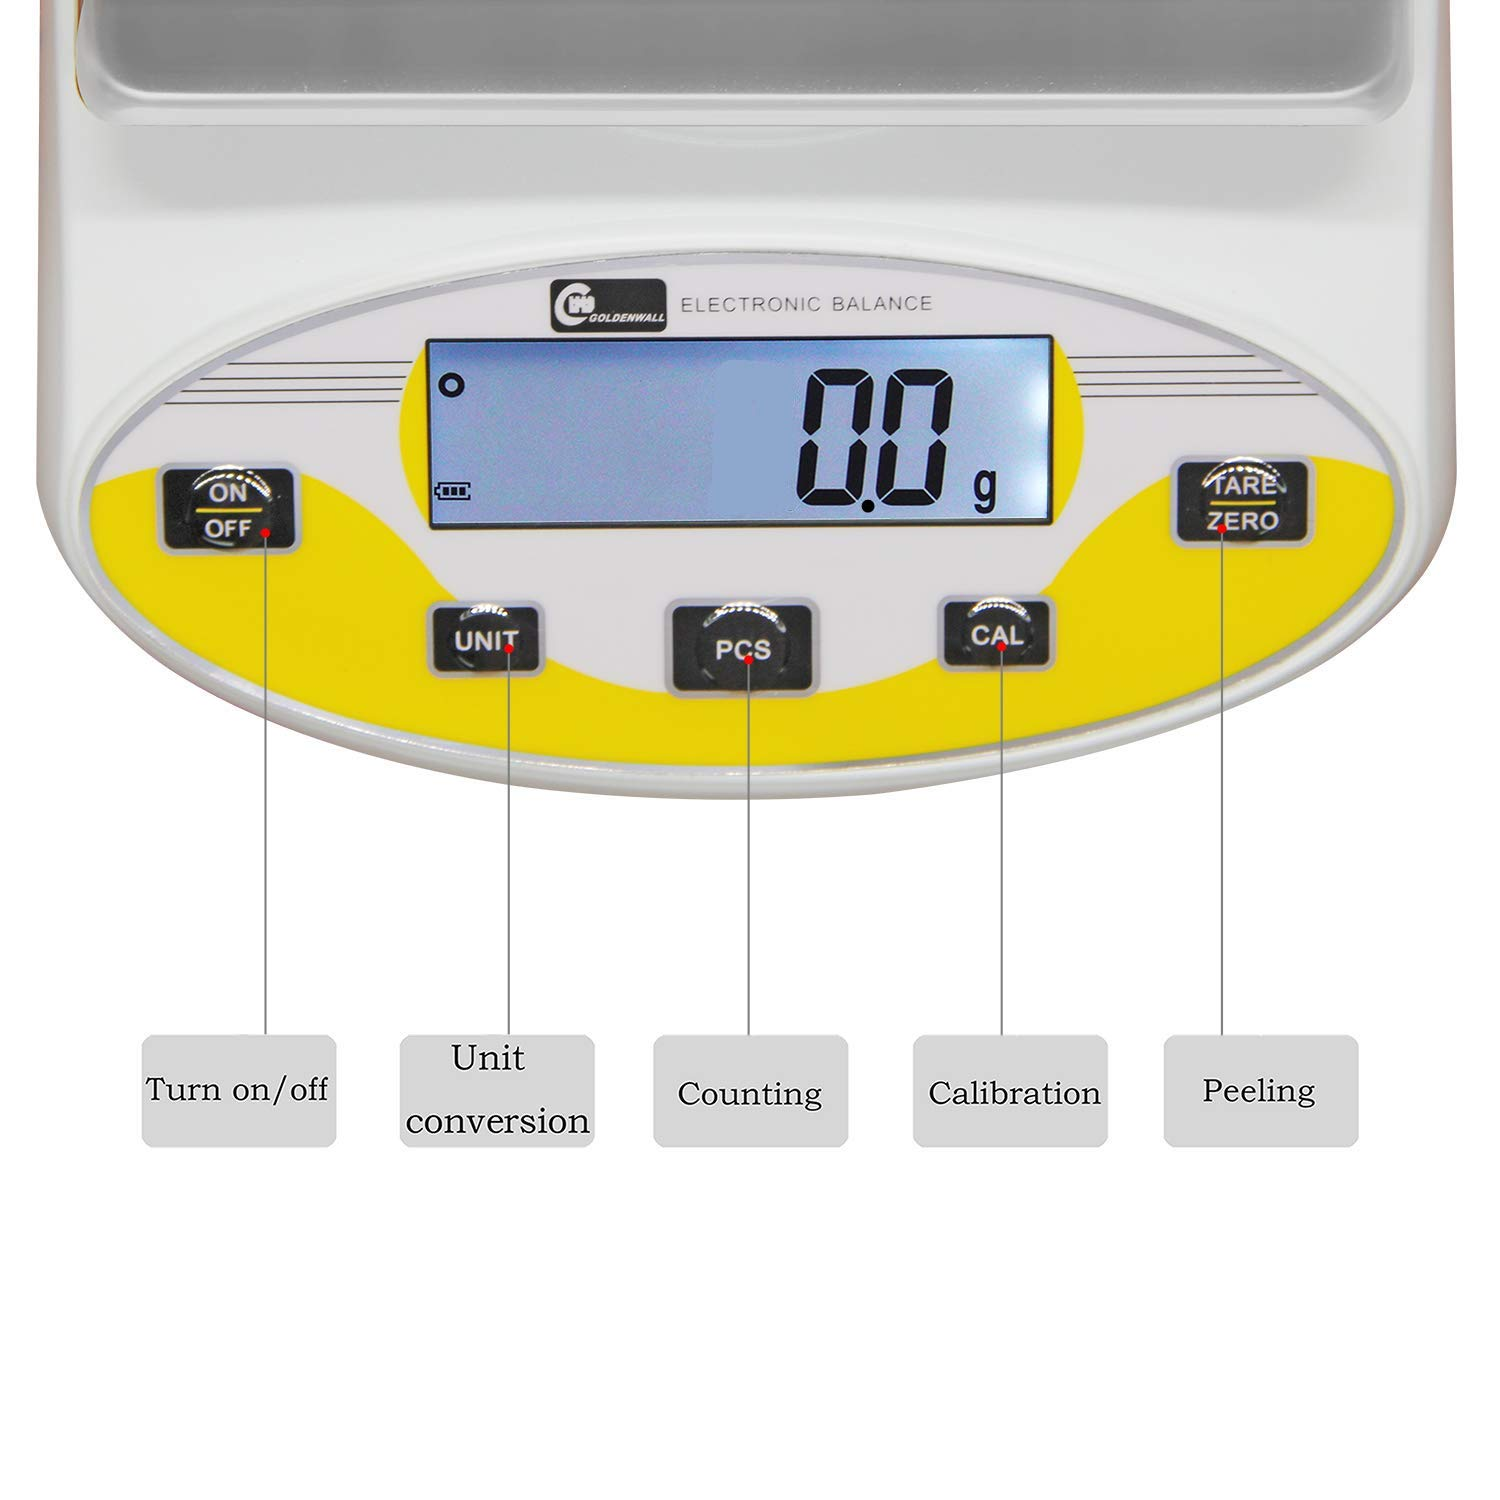 10kg, 0.1g CGOLDENWALL Large range Lab Digital Analytical Balance Lab Precision Scale Jewelry Kitchen Scales Electronic Balance Weighing and Counting Scale 0.1g Calibrated Pan size 180140mm Yellow